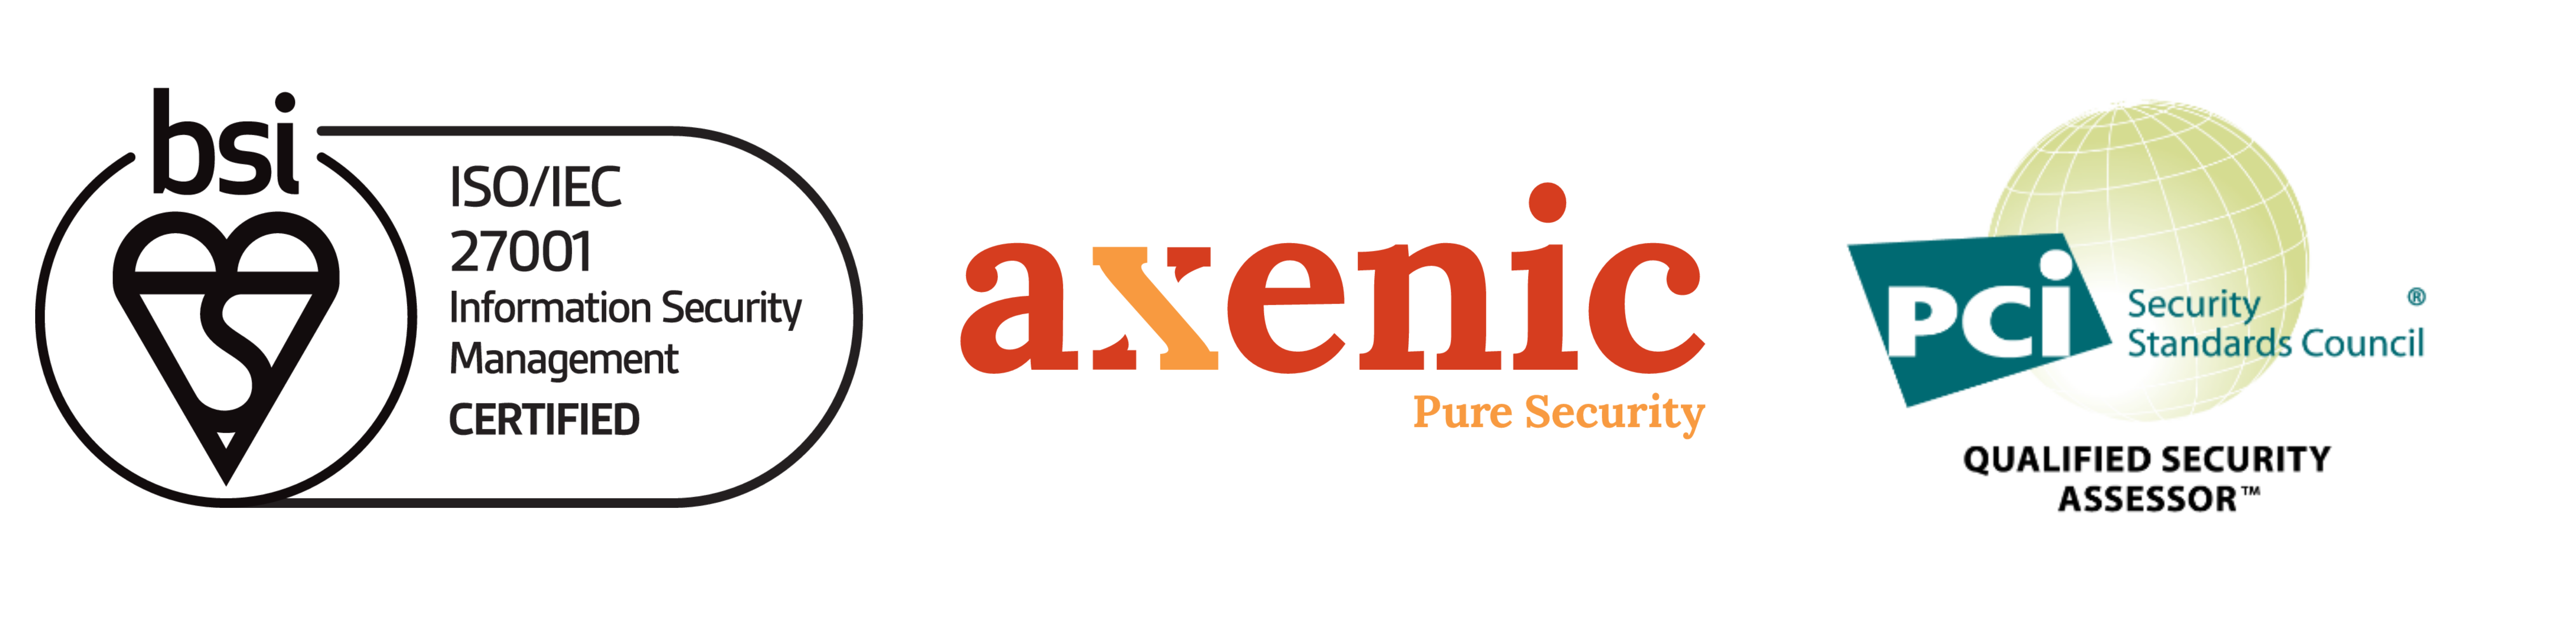 Axenic ISO 27001 PCI DSS credentials